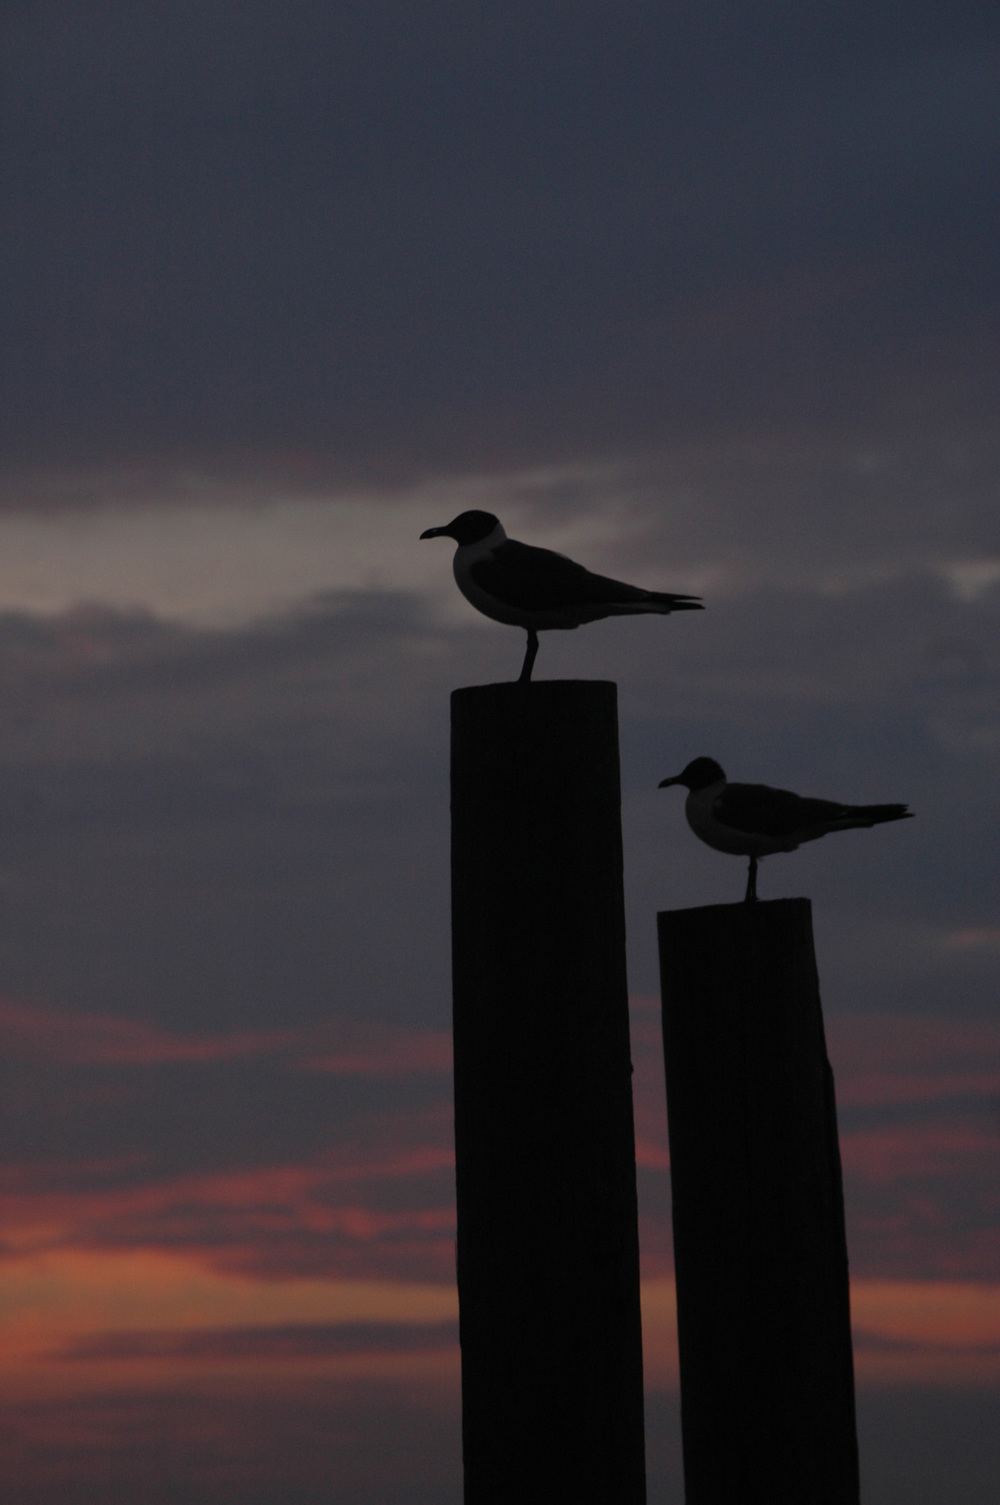 twilight seagulls